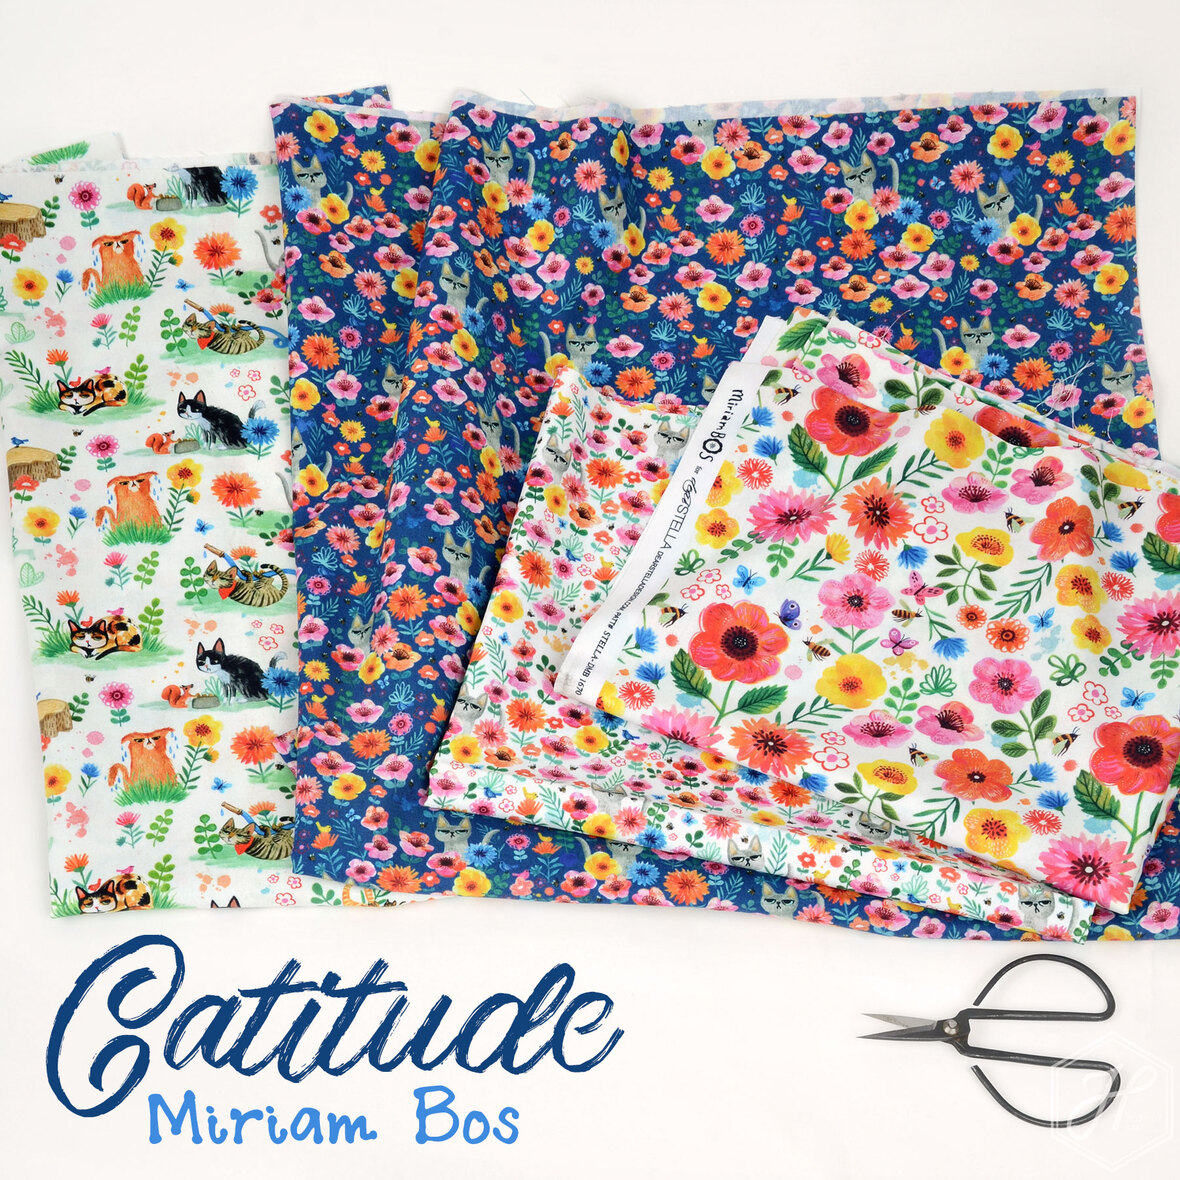 Catitude-Fabric-Miriam-Bos-and-Dear-Stella-at-Hawthorne-Supply-Co